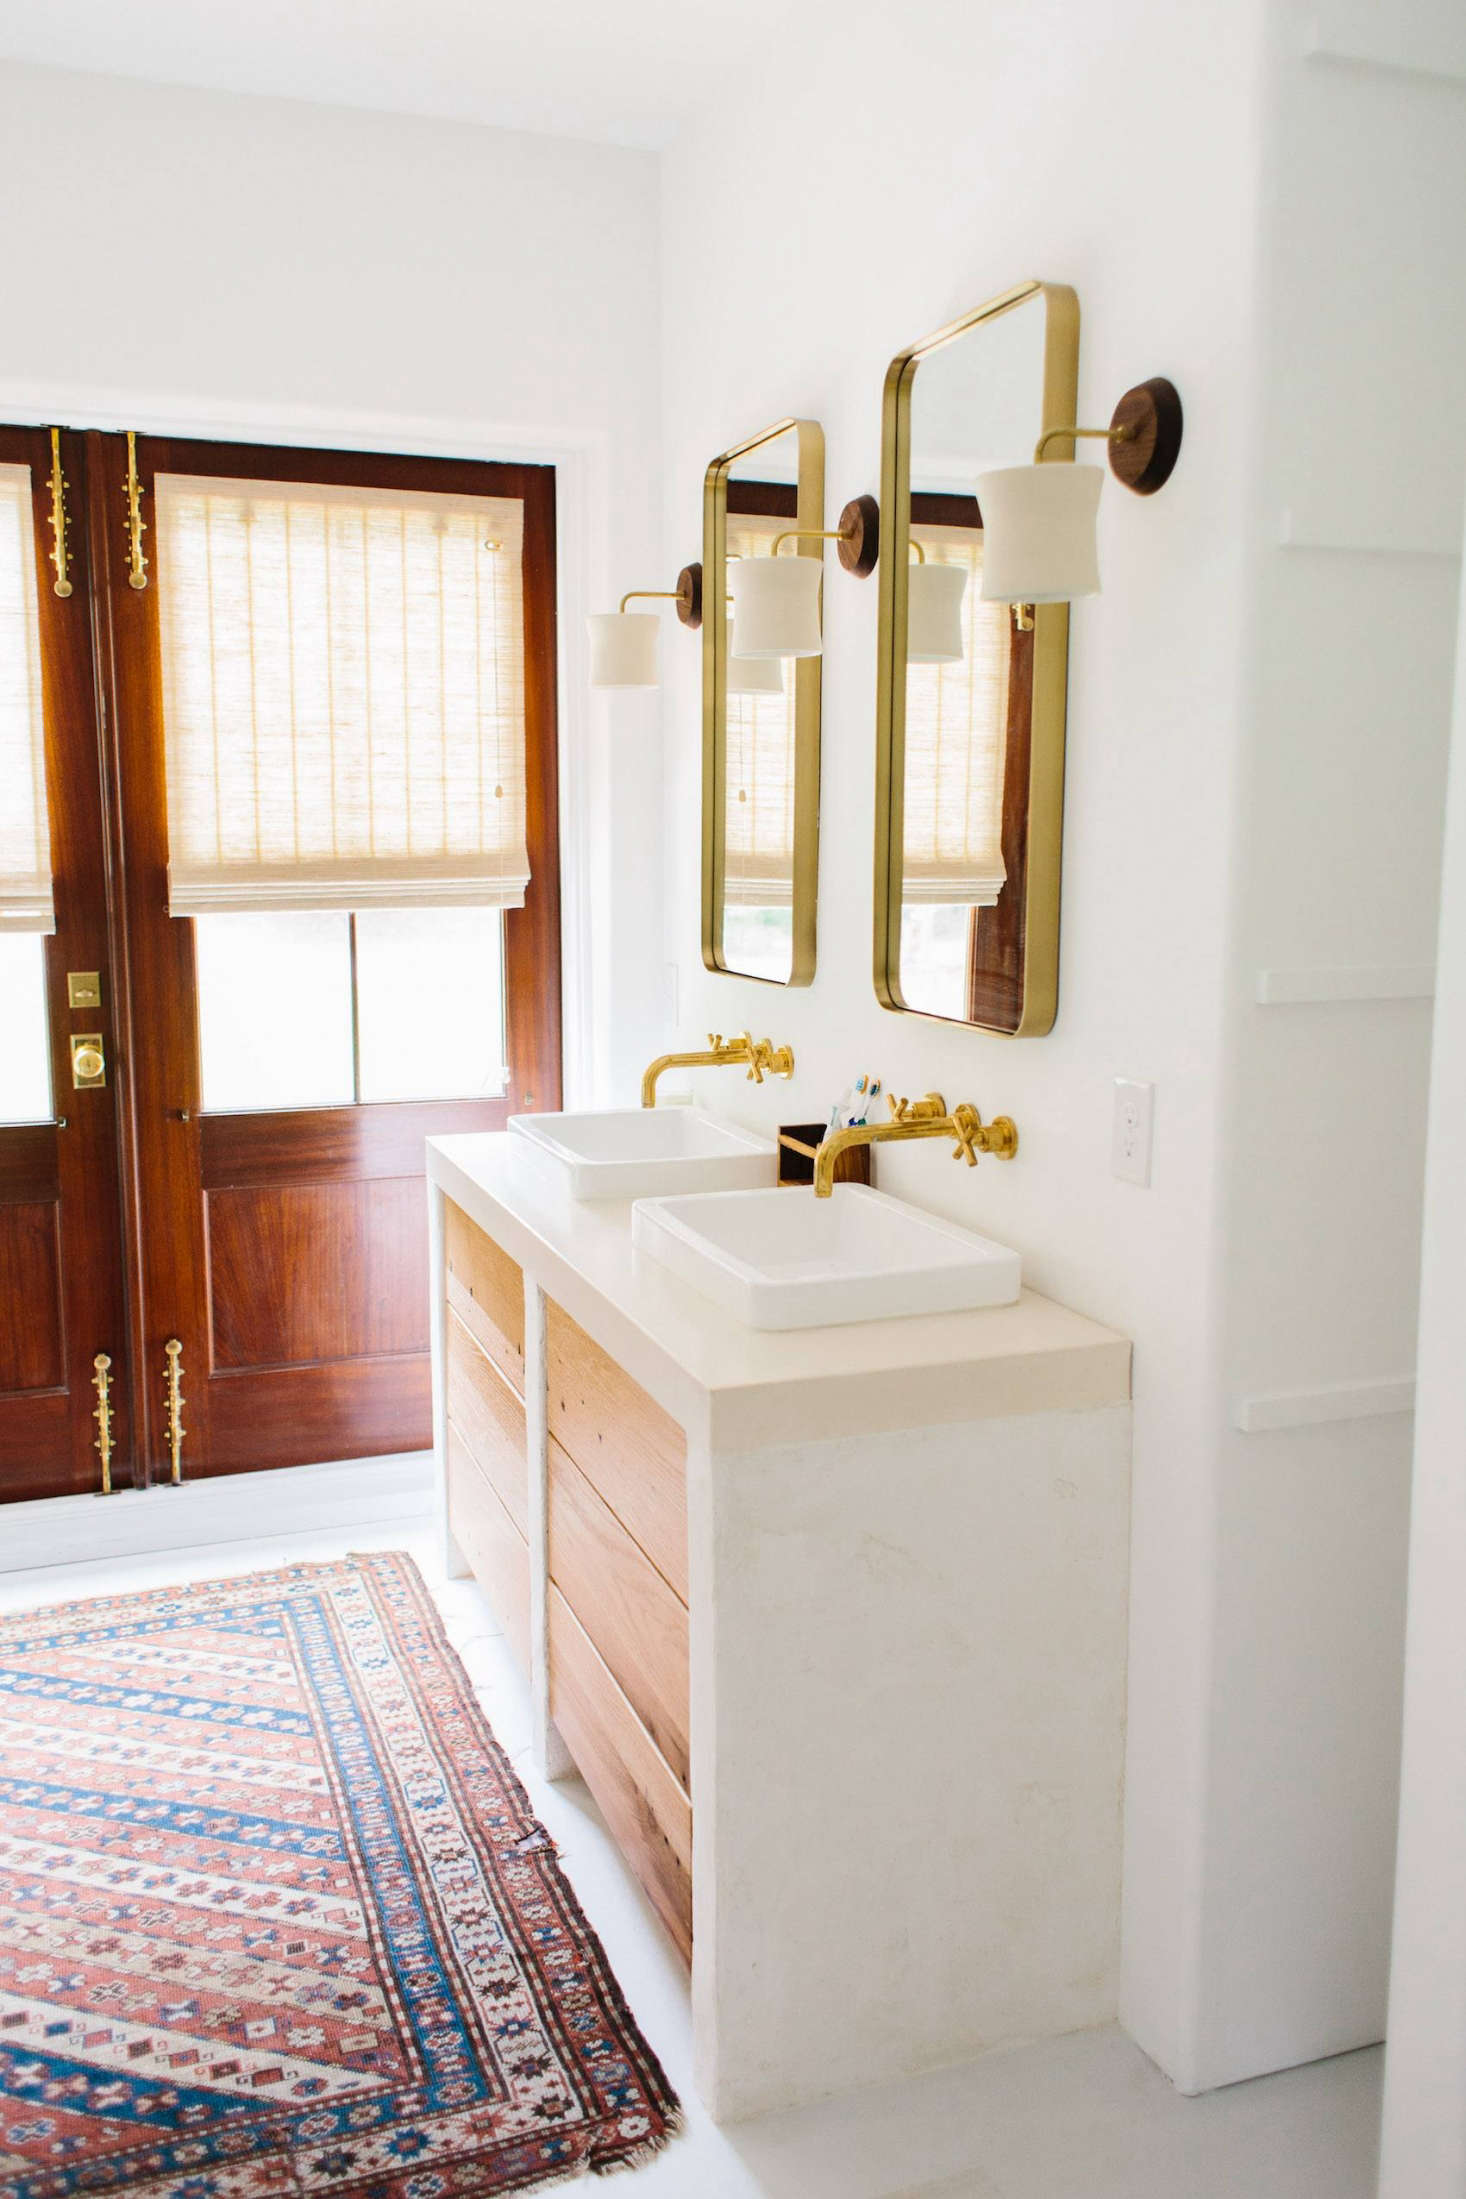 The master bathroom has a kilim rug and brass details. A pair of French doors opens onto the garden.